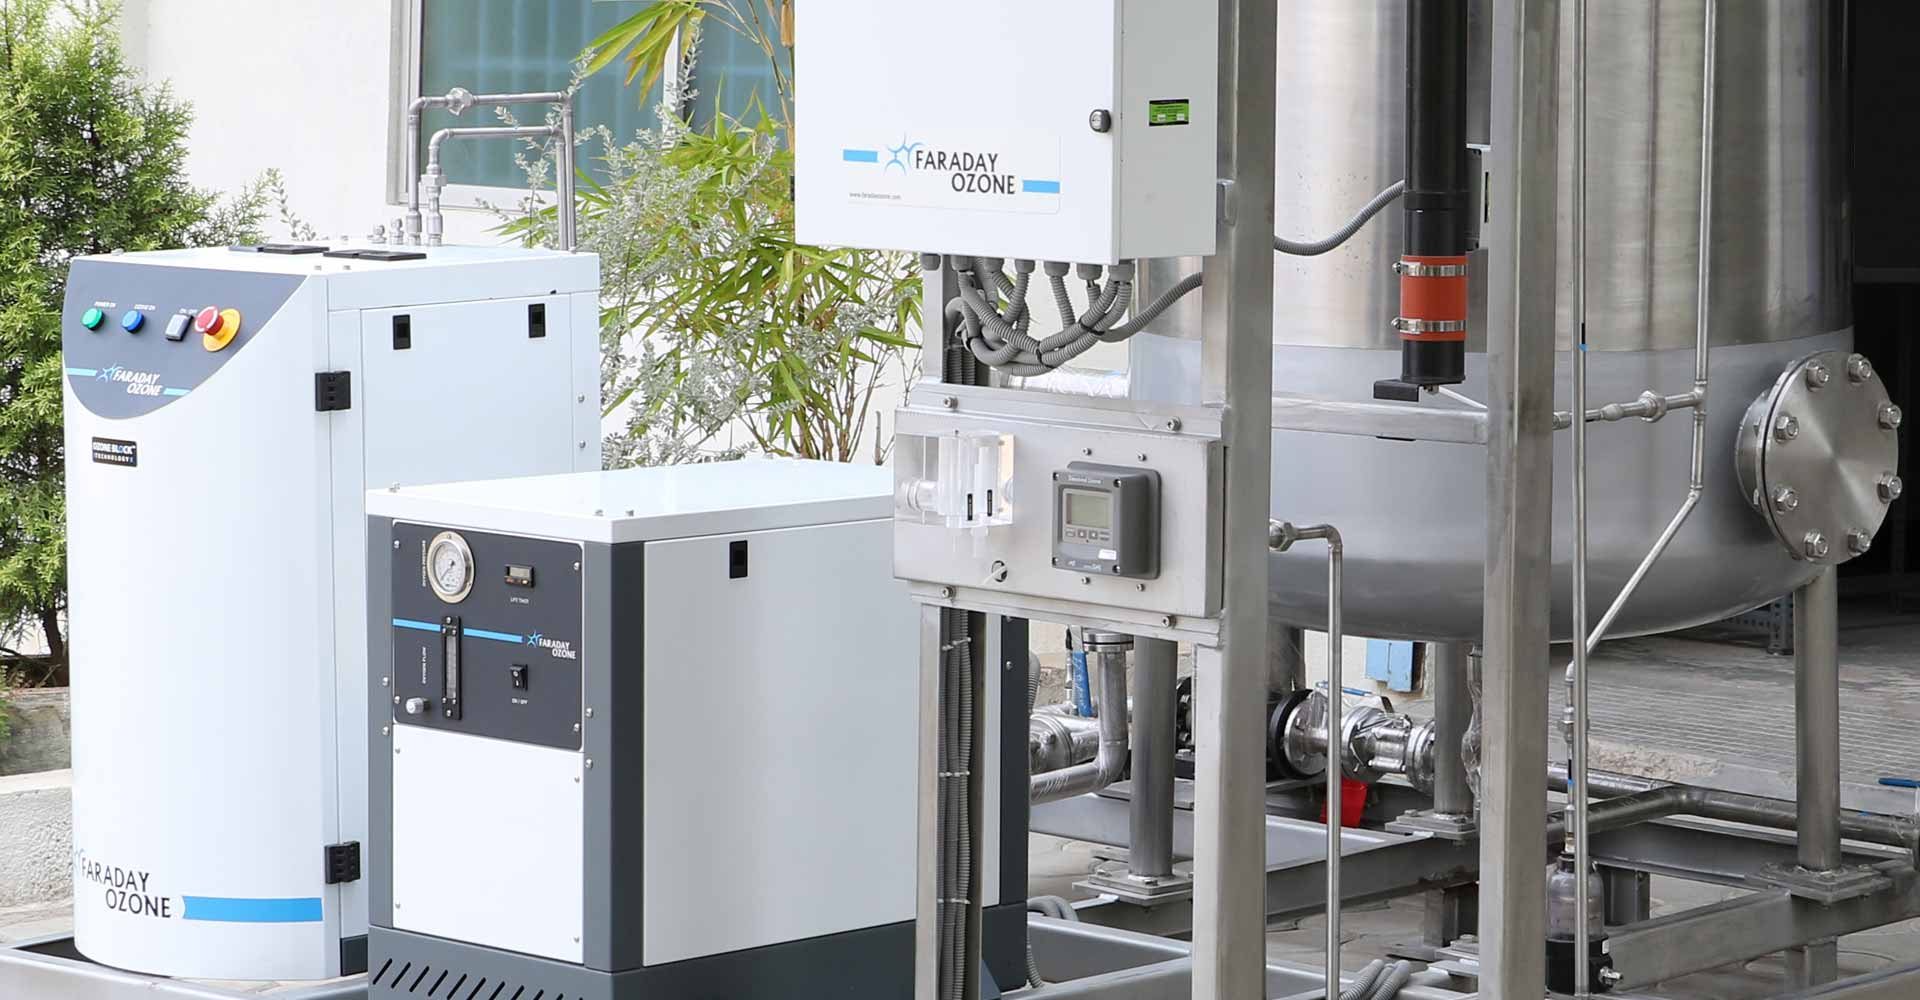 ozone-projects-for-water-and-wastewater-treatment